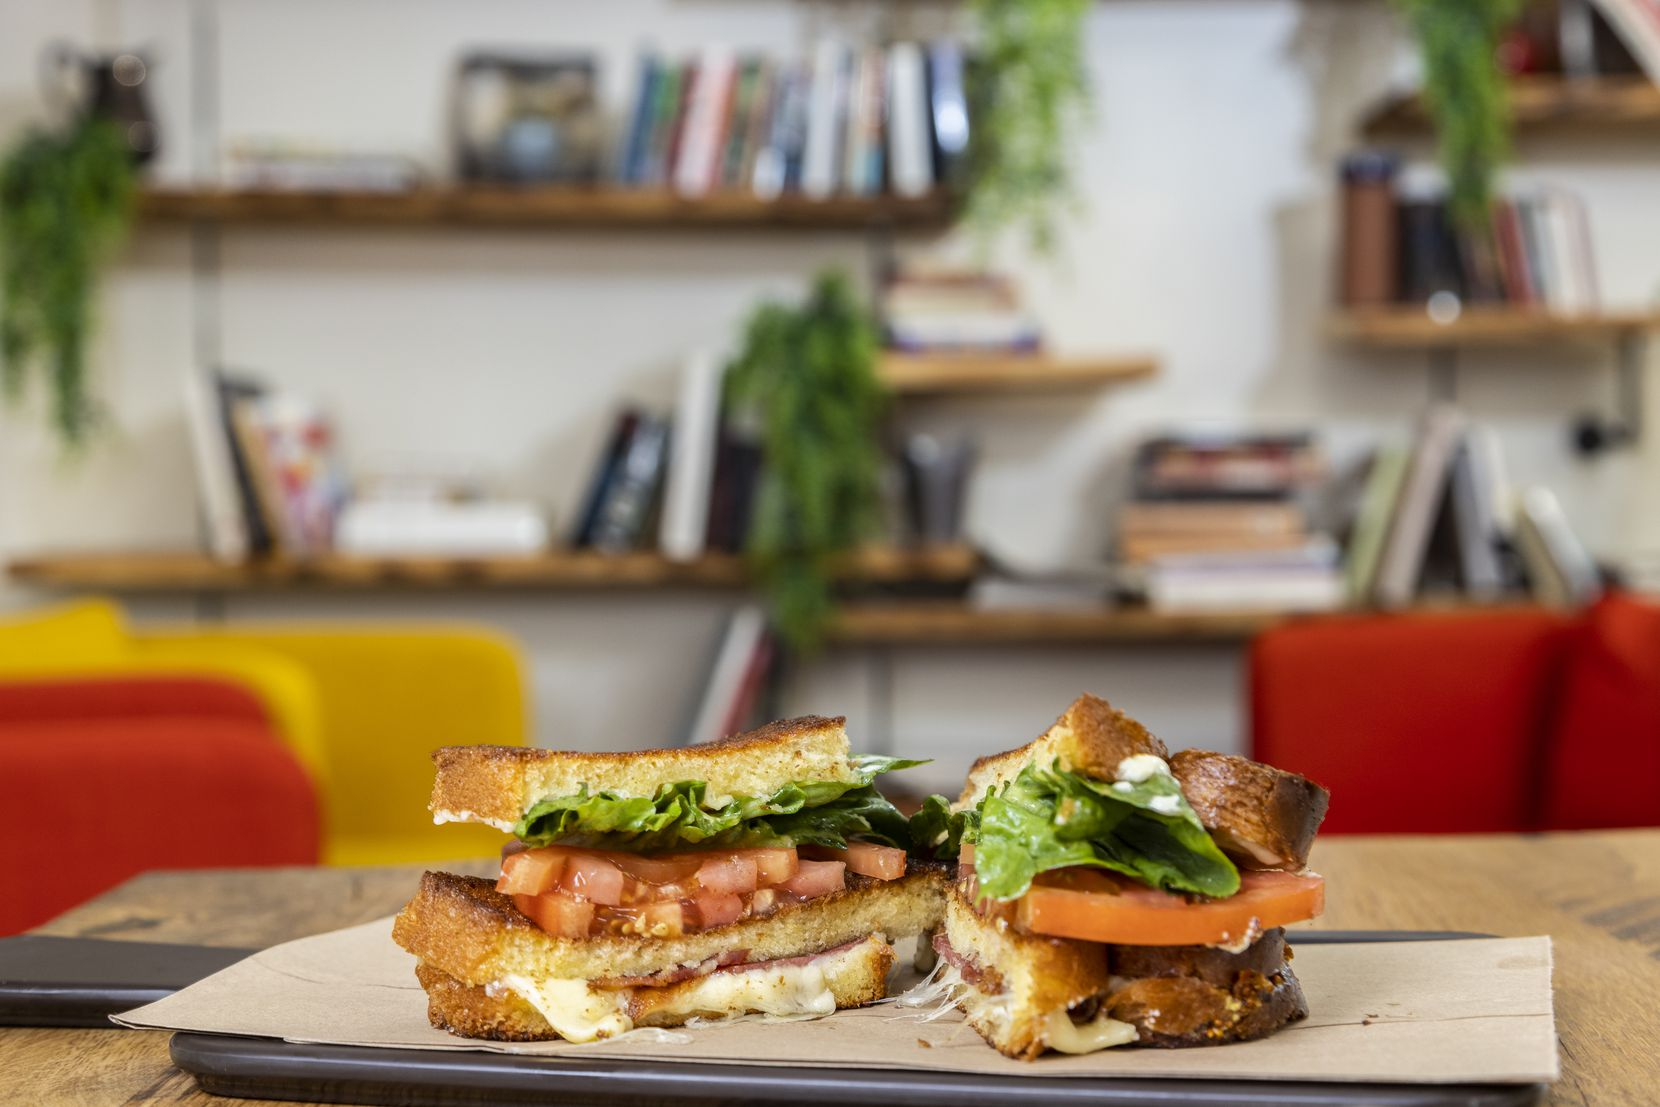 A Grilled Cheese BLT sandwich at Brown Bag Provisions